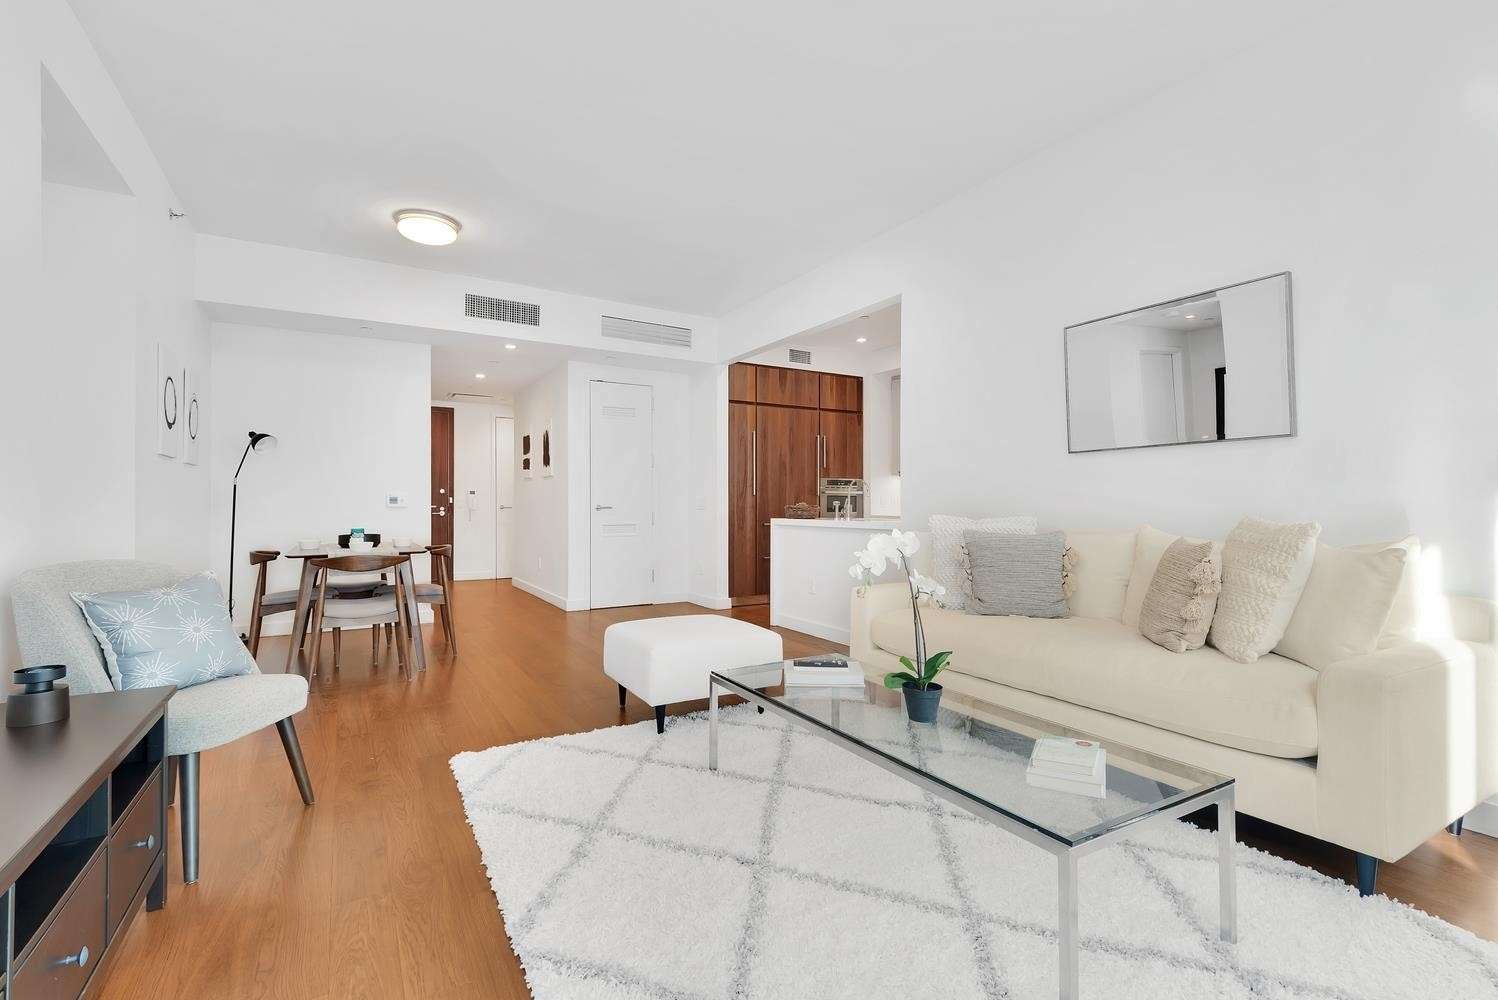 Property at Citizen 360, 360 East 89th St, 5C Yorkville, New York, NY 10128